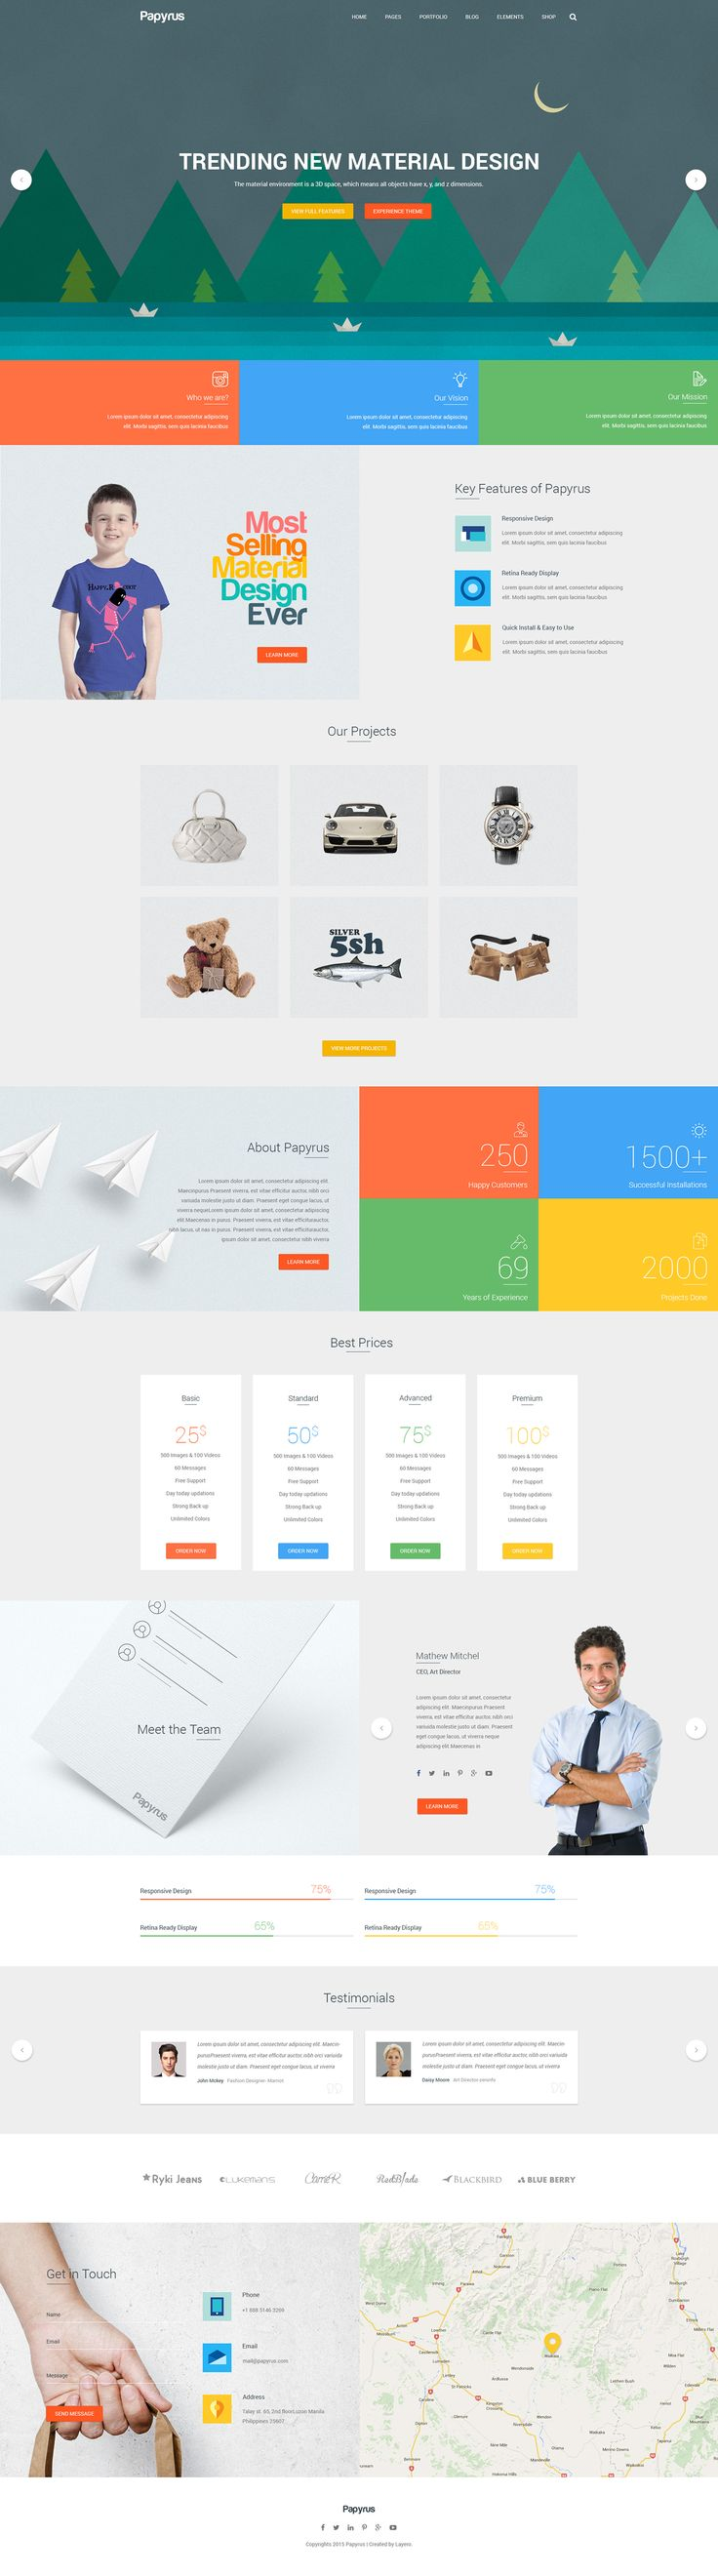 Papyrus - Material Design, Multipurpose Theme on Behance